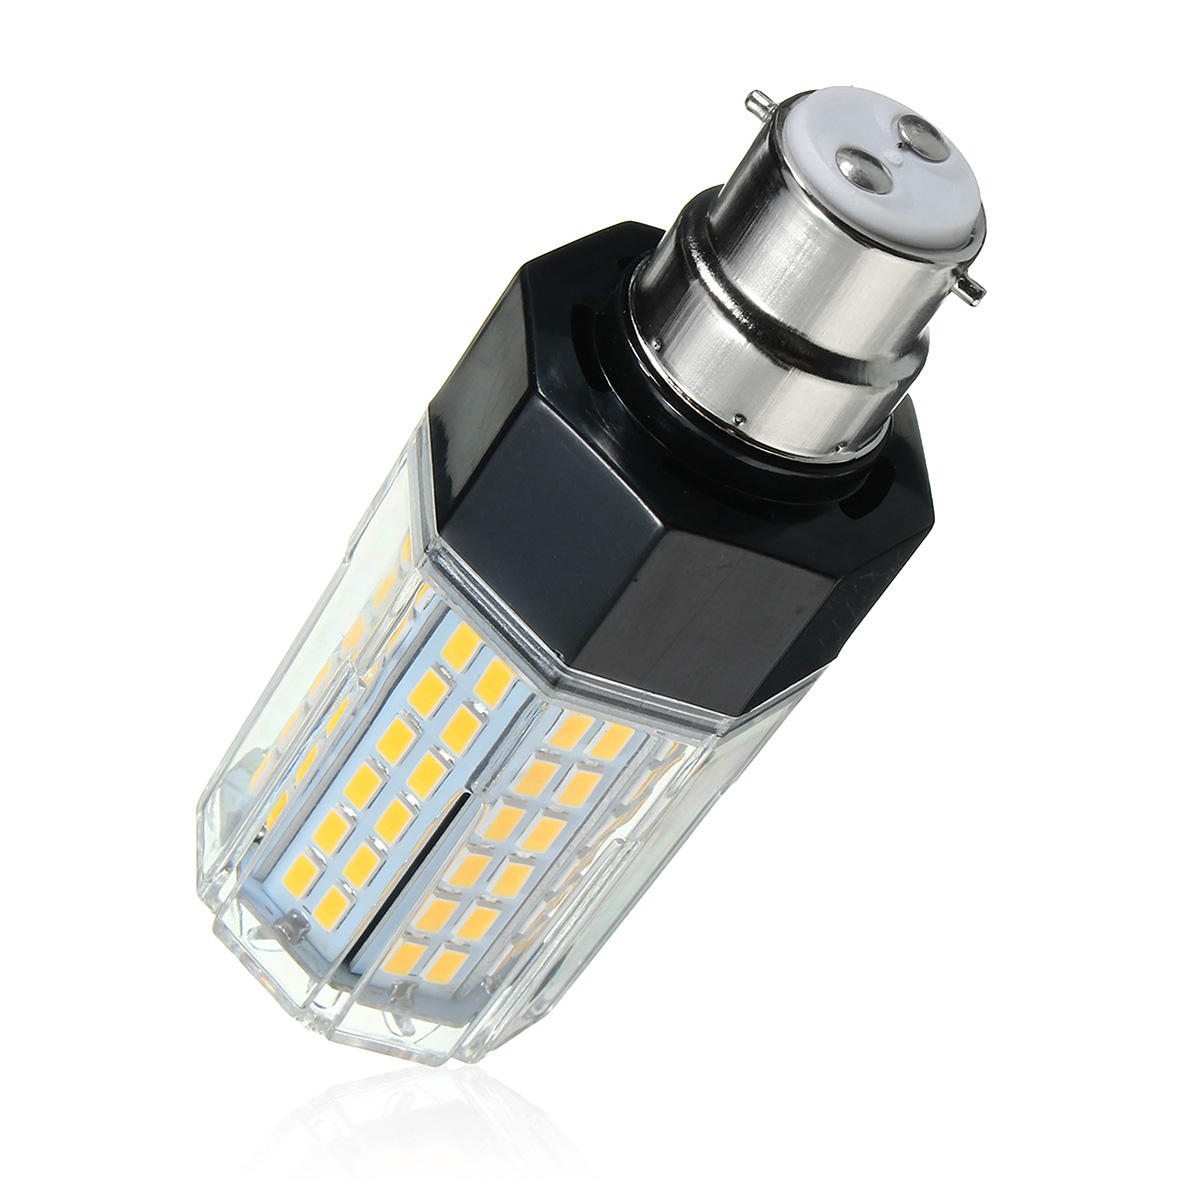 E27/E14/E12/B22/G9/GU10 LED Bulb 4W SMD 4014 56 400LM Pure White/Warm White Corn Light Lamp AC 220V - 2